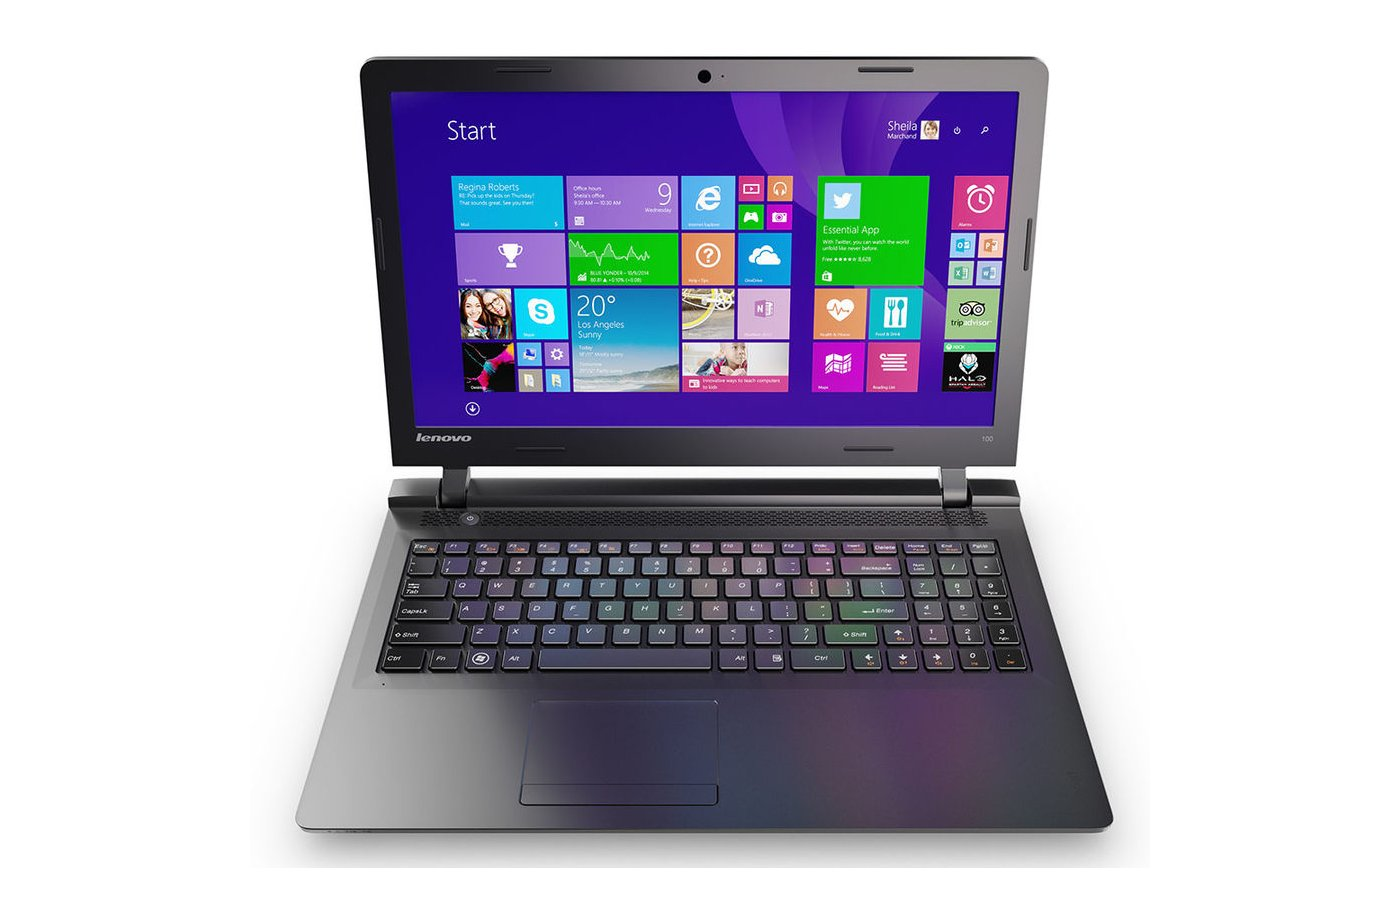 Ноутбук Lenovo IdeaPad 100-15IBY /80MJ0056RK/ intel N2840/2Gb/250Gb/15.6/WiFi/BT/Cam/Win8